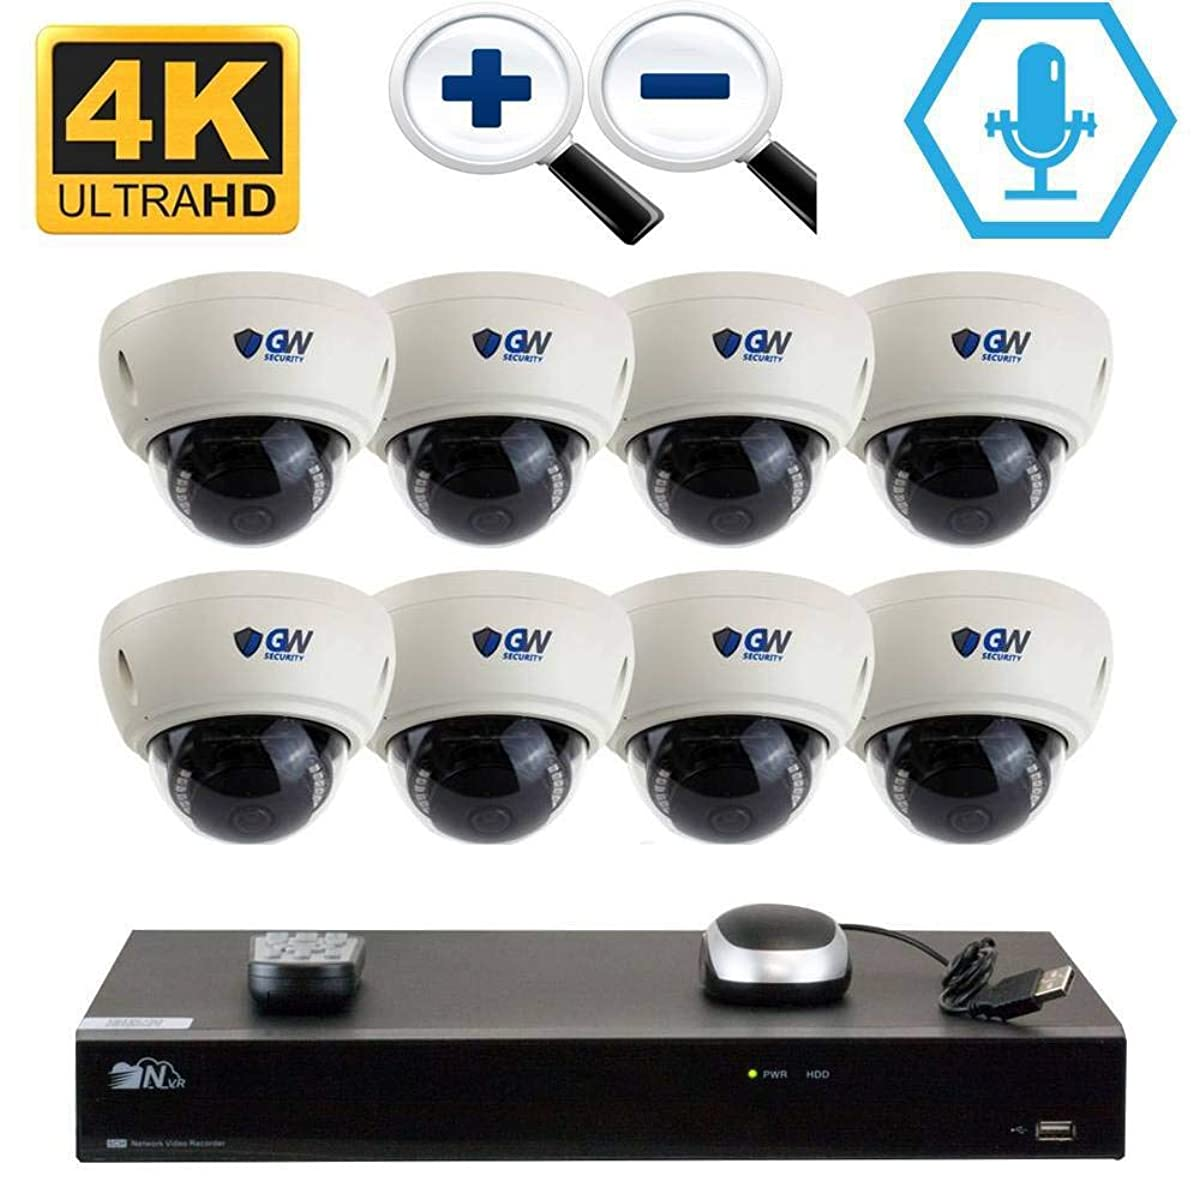 GW 8CH H.265 PoE NVR Ultra-HD 4K (3840x2160) Video & Audio Security Camera System with 8 x 4K (8MP) Microphone 3X Motorized Zoom IP Dome Camera, 100ft Night Vision, 4TB HDD